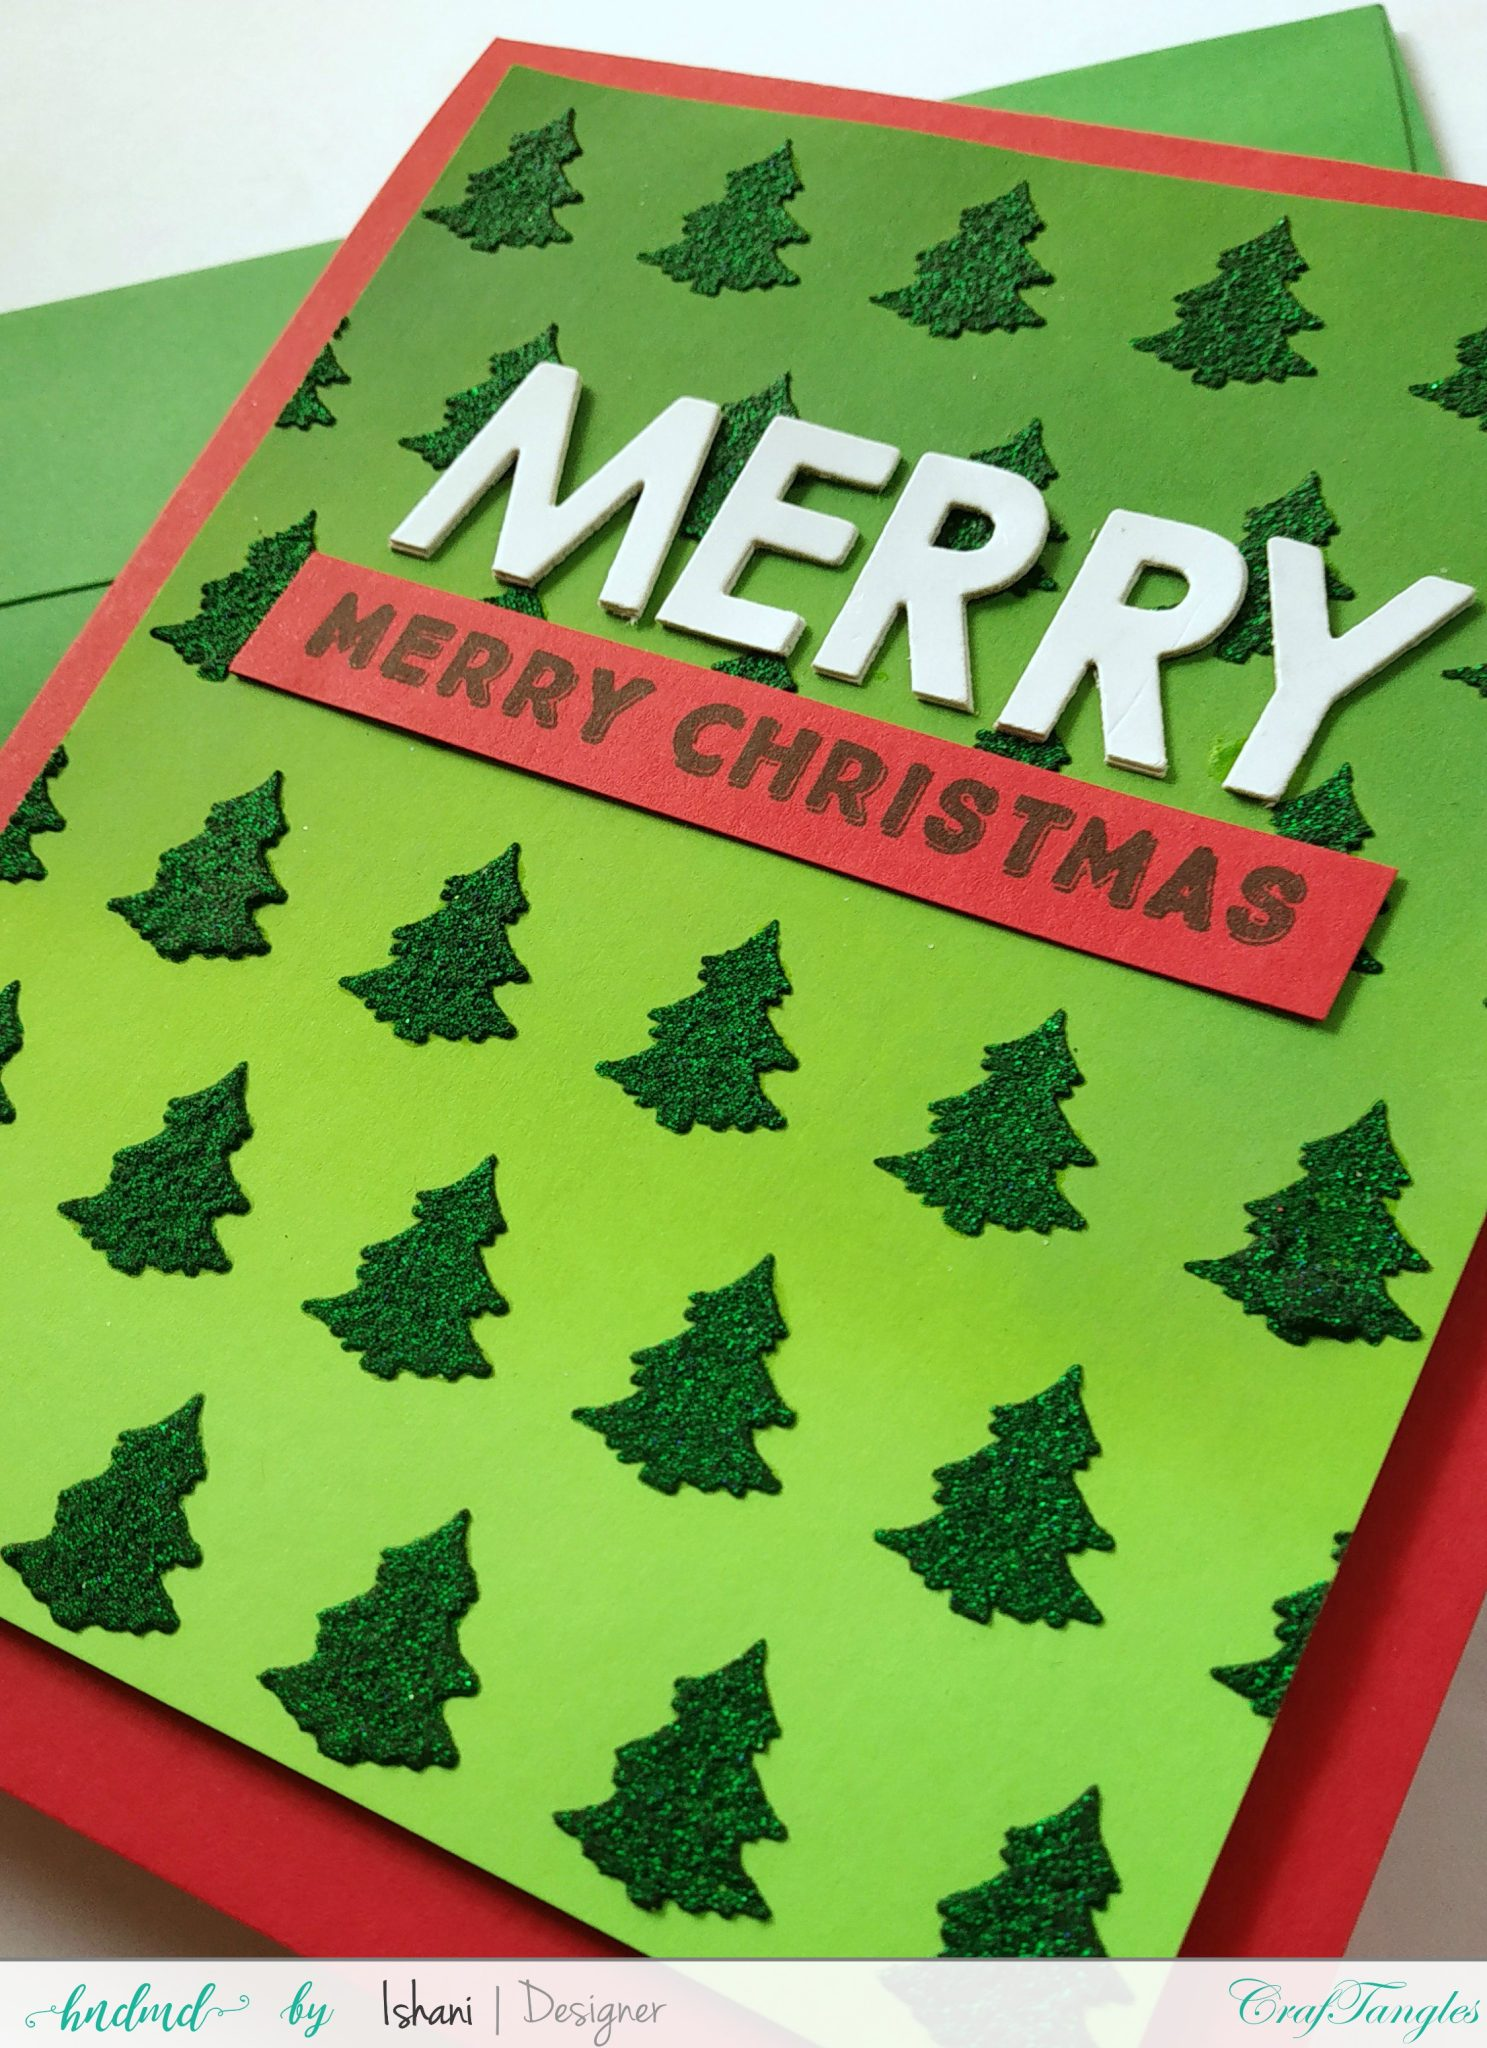 3 Bright and Cheerful Christmas cards 2